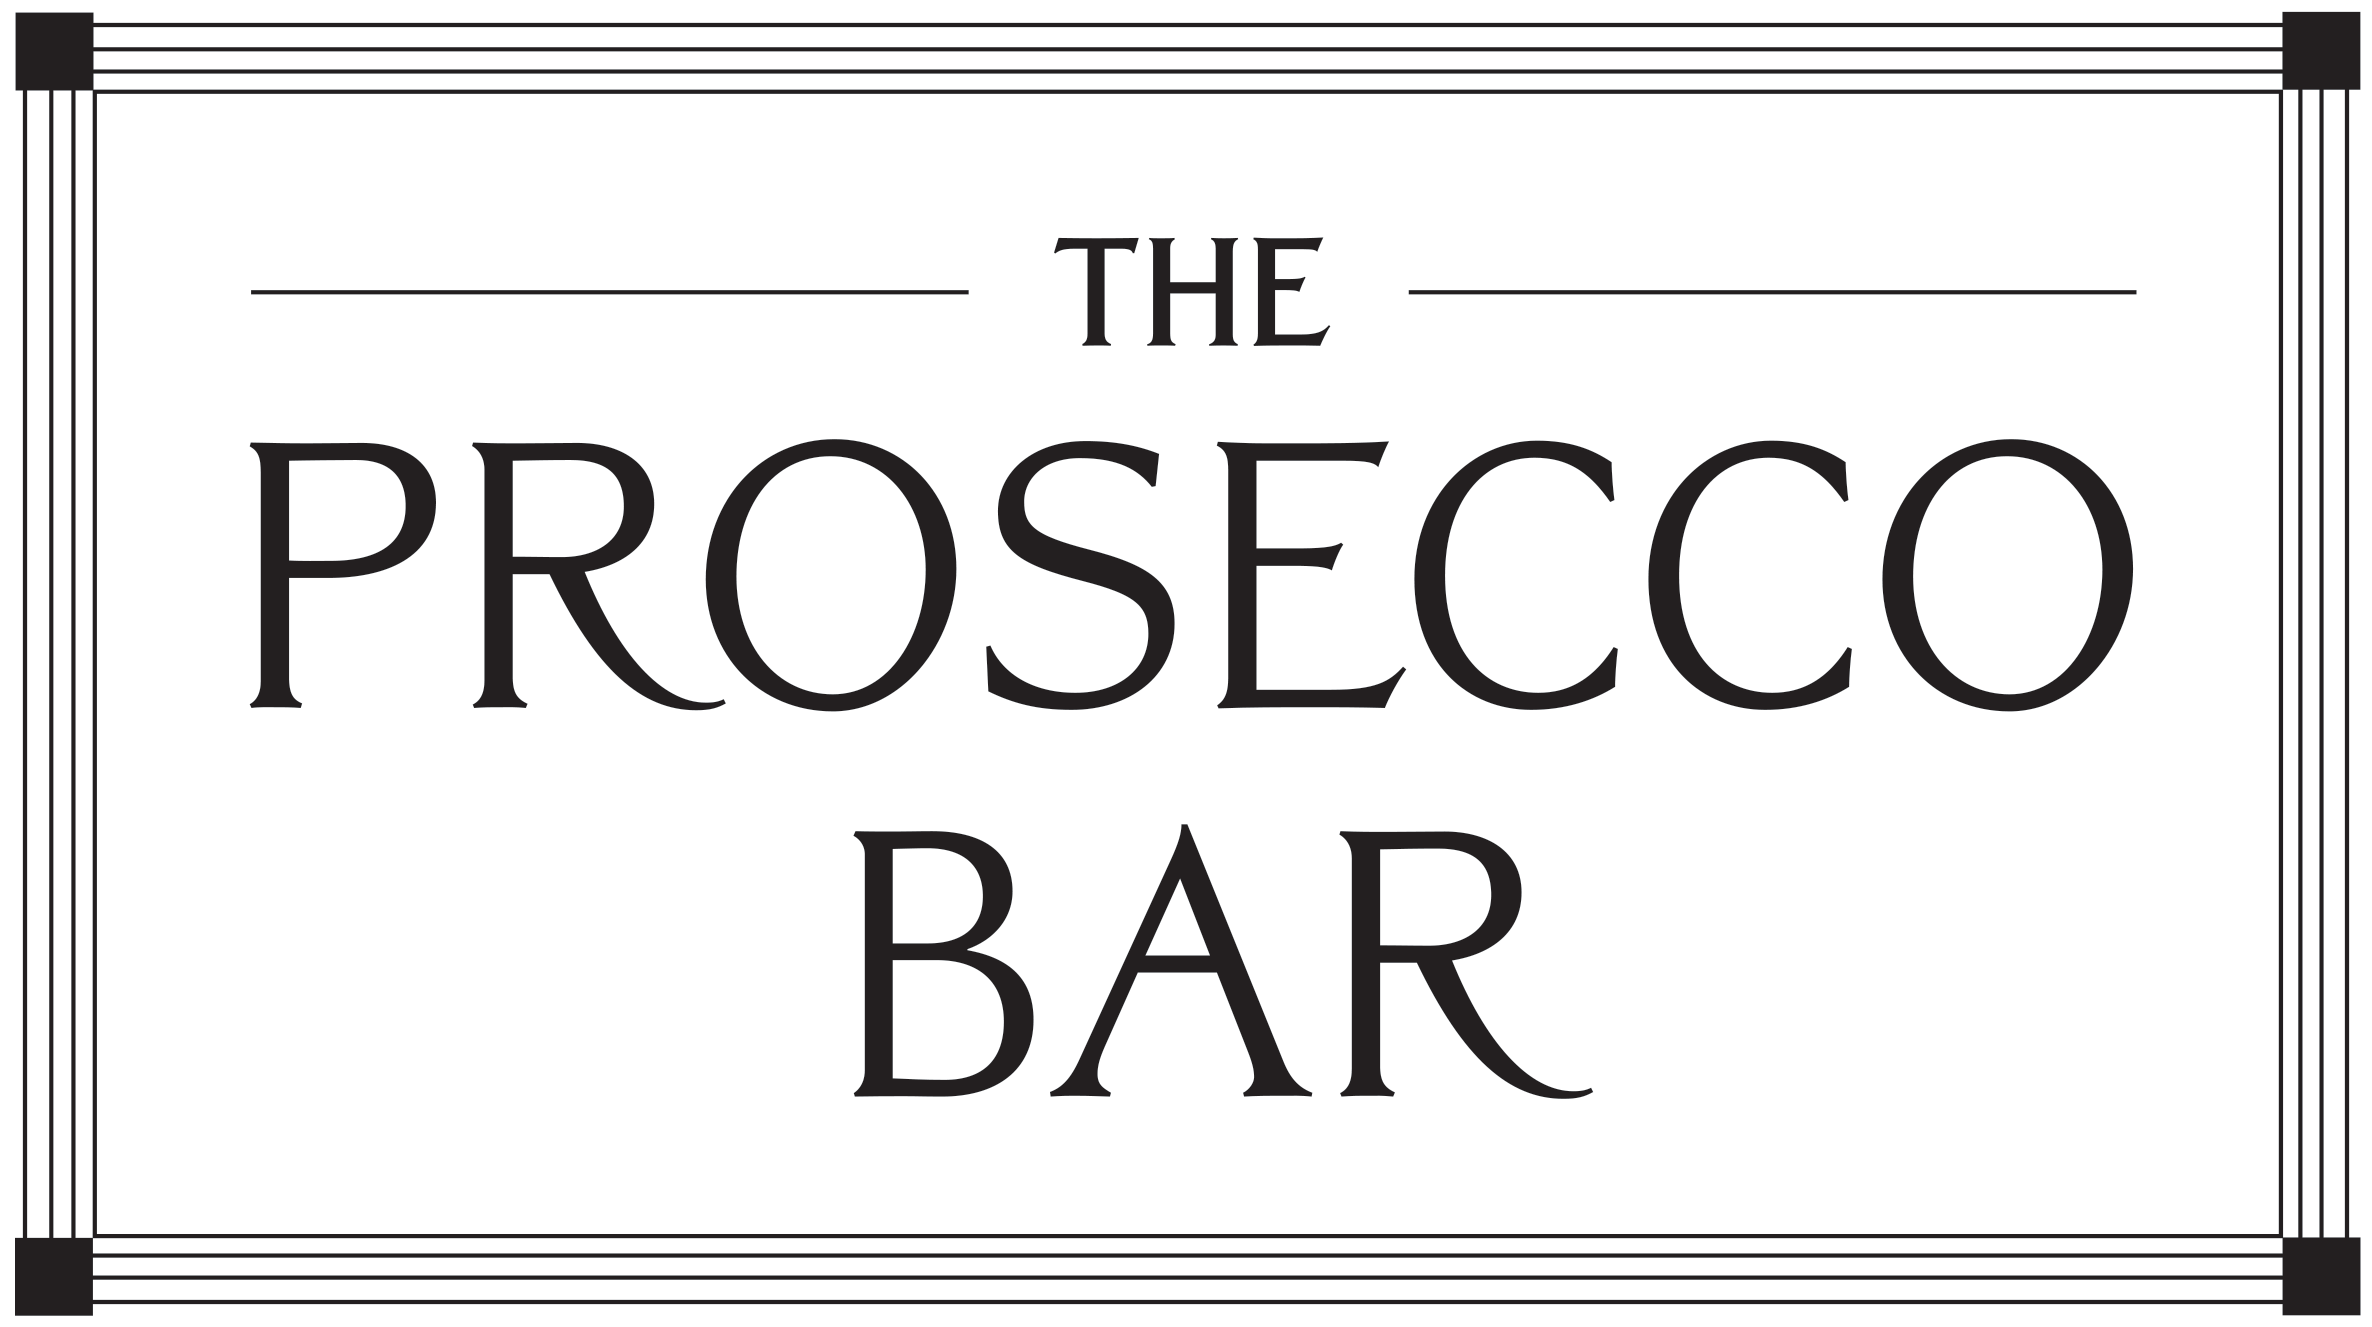 Prosecco bar sign-V2.png